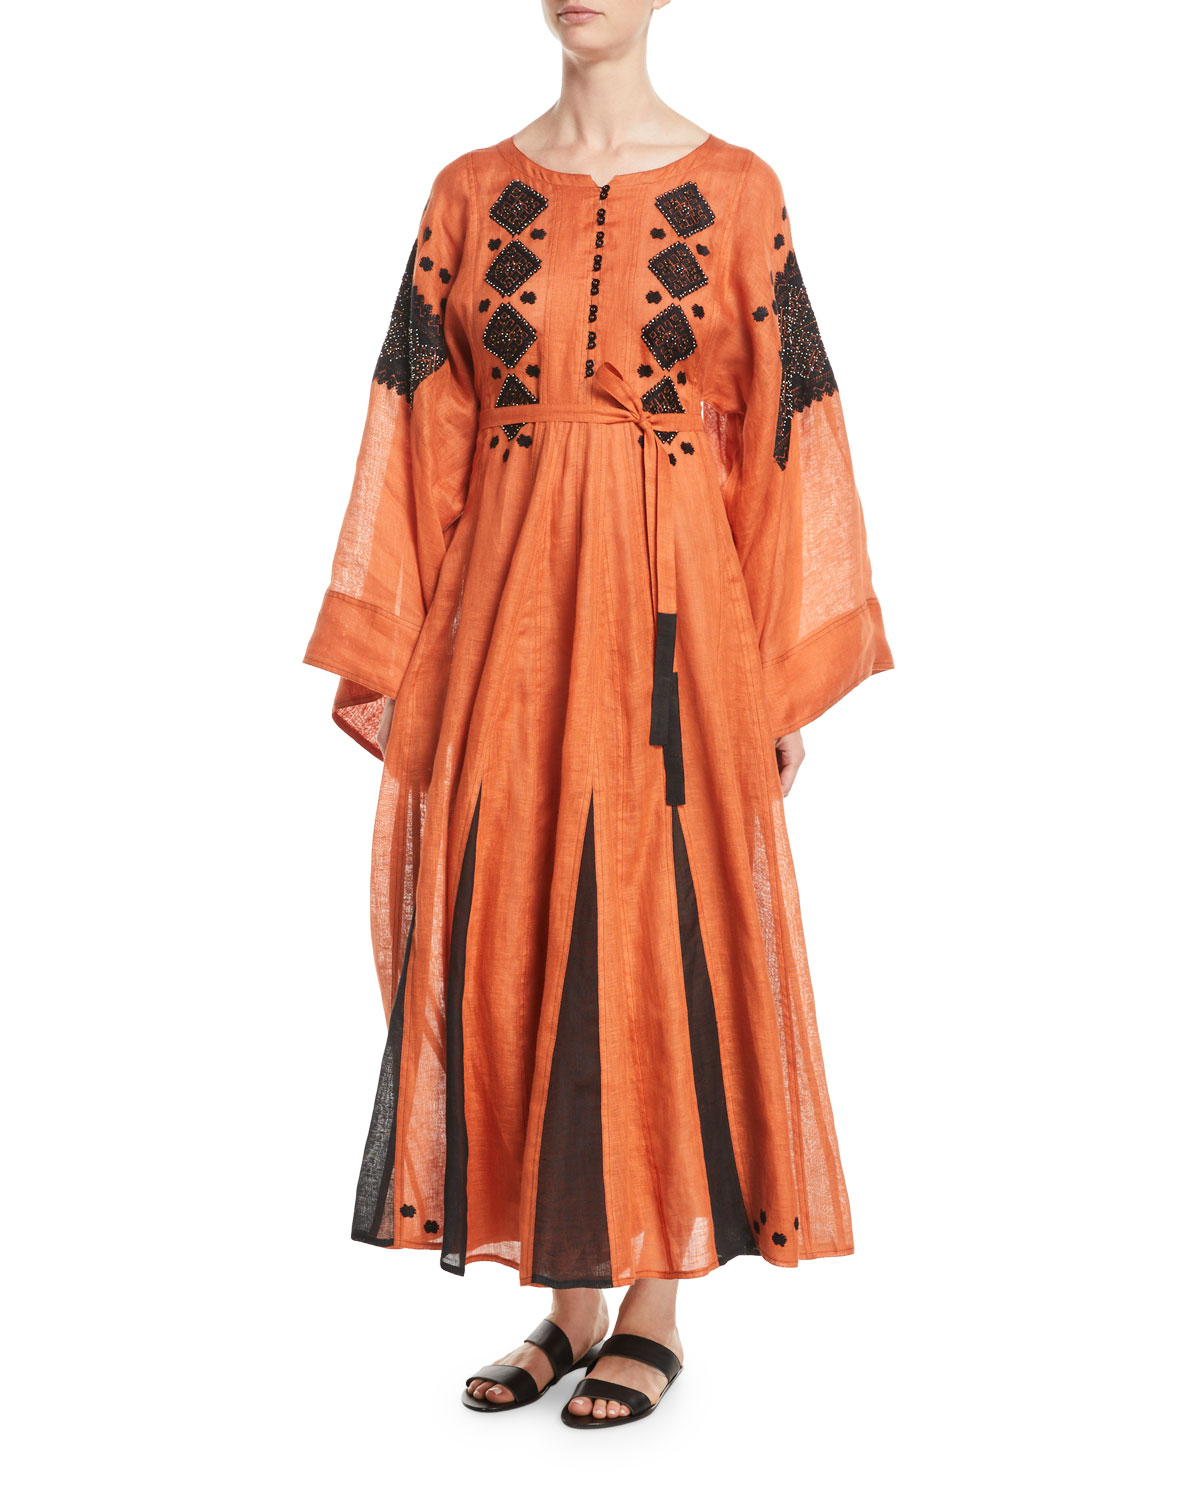 VITA KIN MIRROR ROUND-NECK FLARED-SLEEVES BEADED-EMBROIDERED LONG LINEN DRESS W/ GODET INSETS